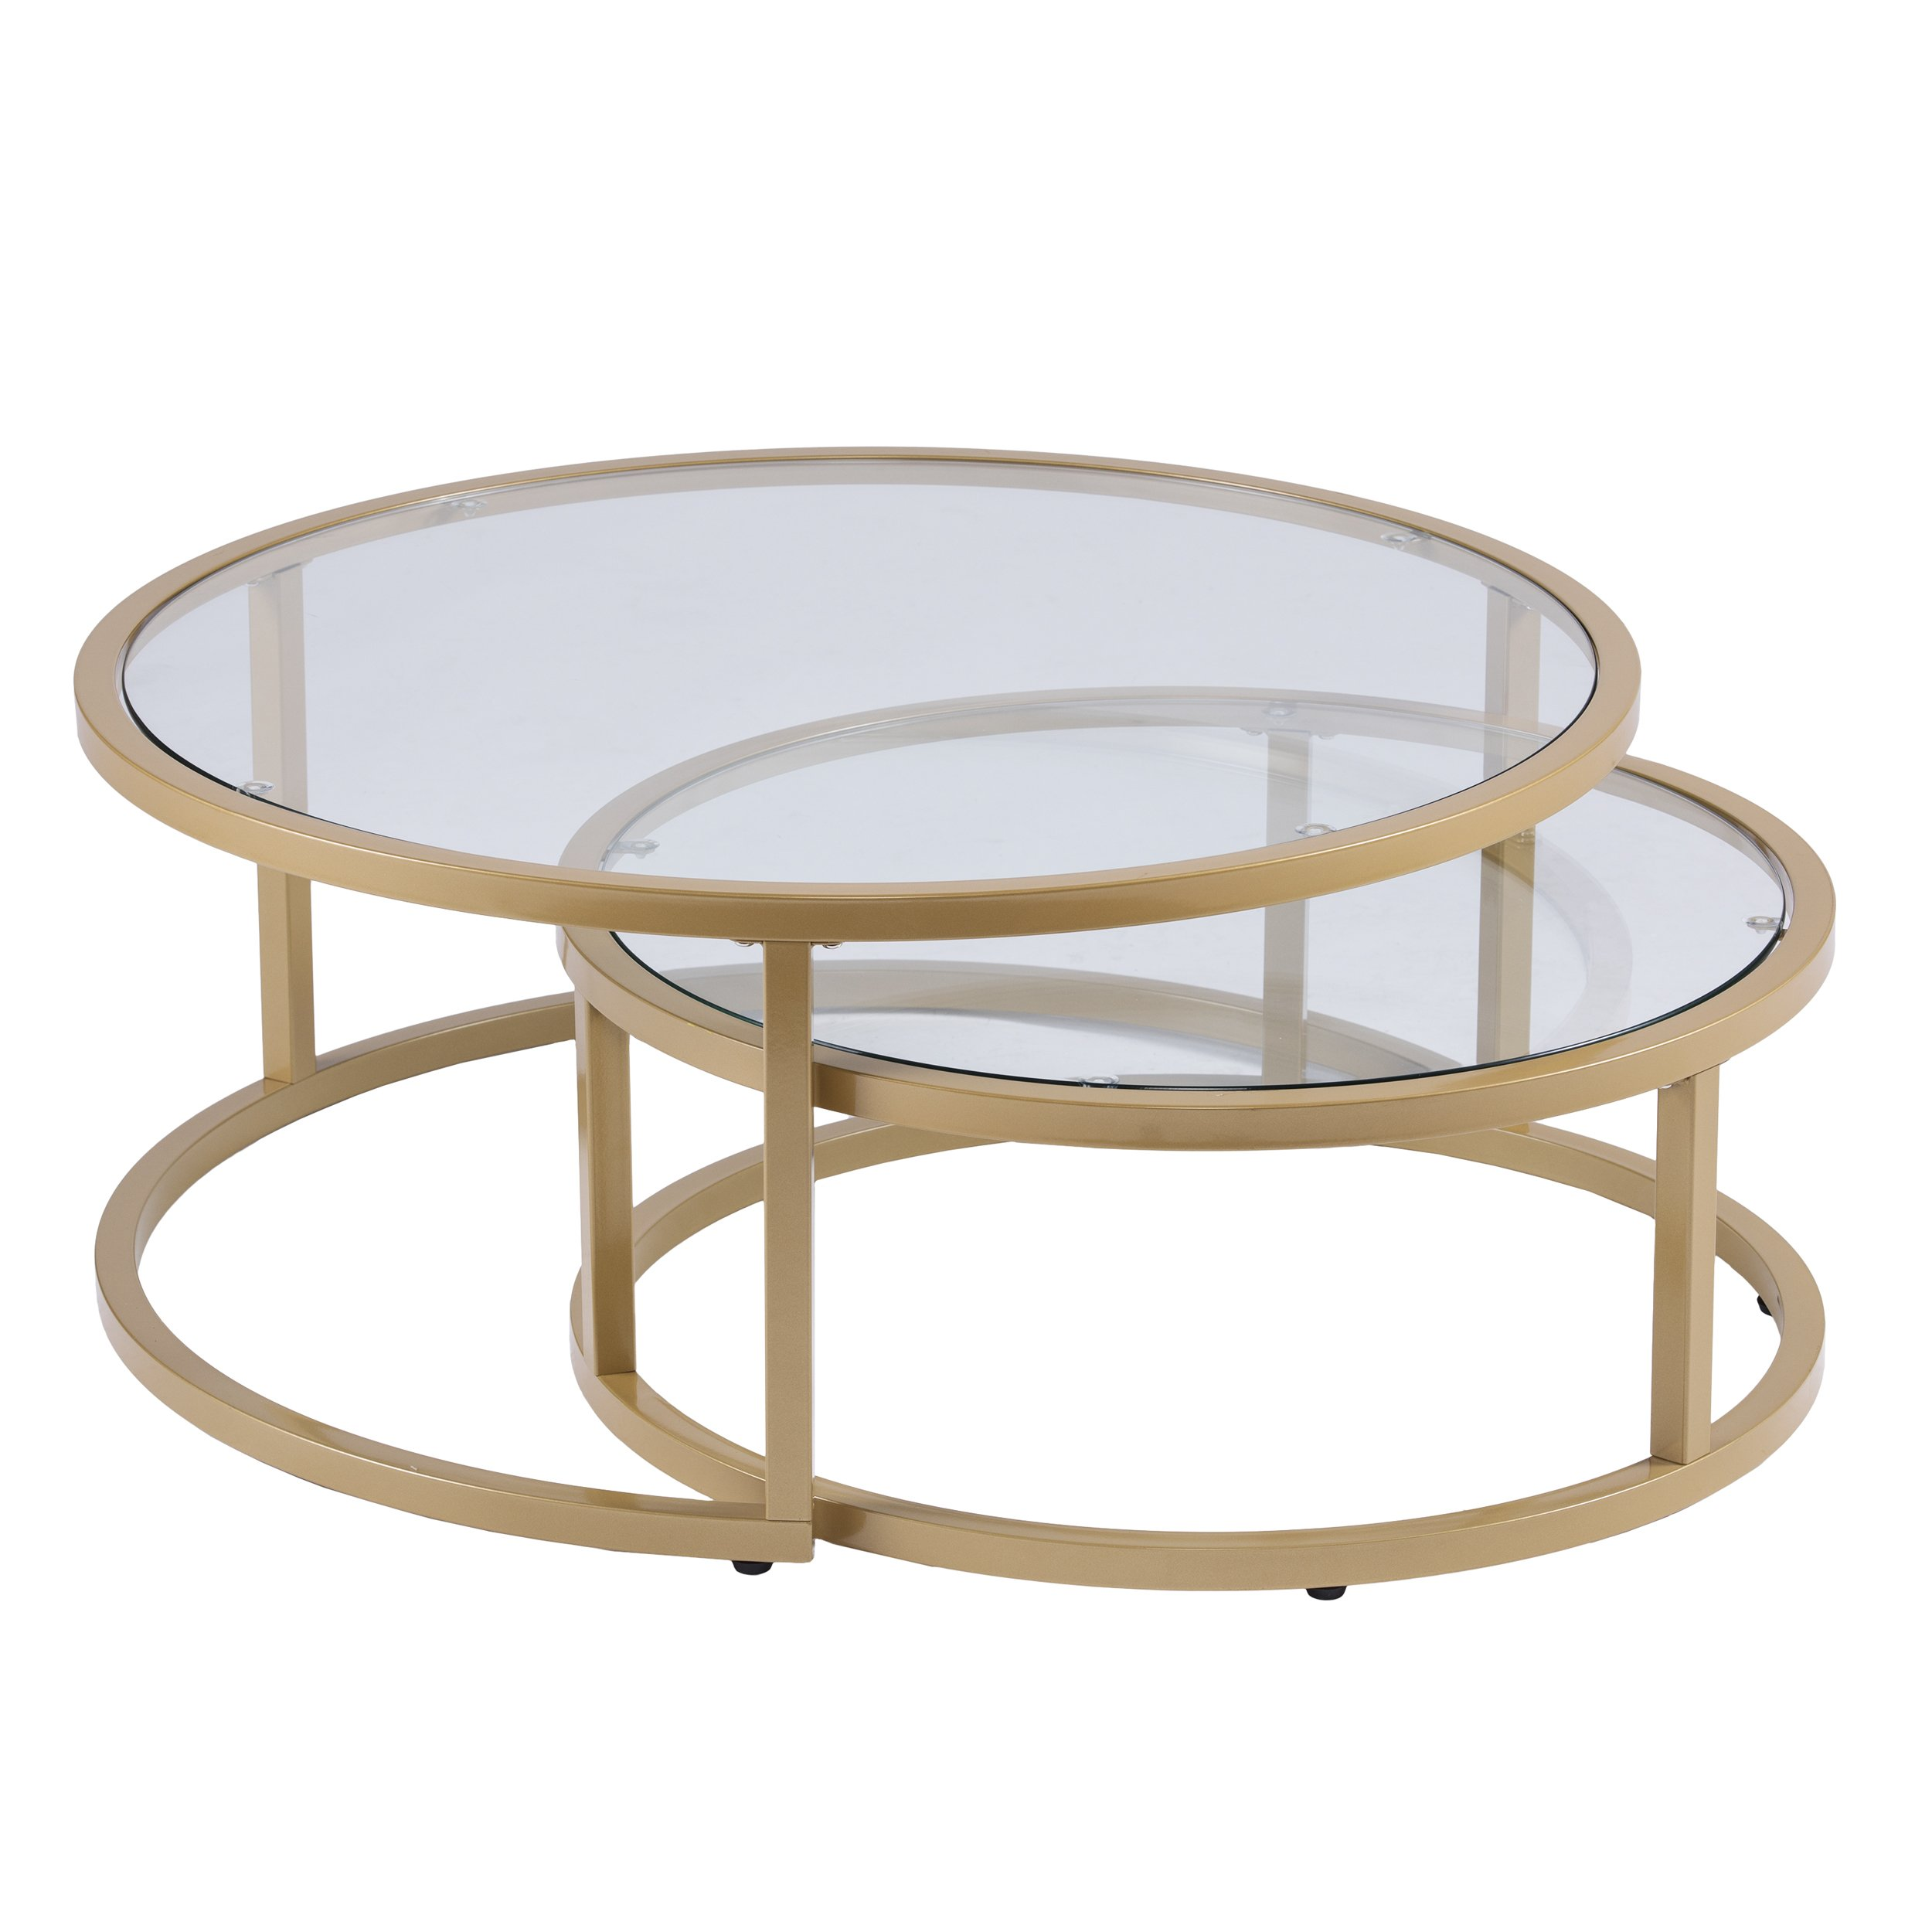 Furniture HotSpot - Gold Nesting Coffee Table - 2 Pc - Round - 35.5'' W x 35.5'' D x 14.75'' H by Furniture HotSpot